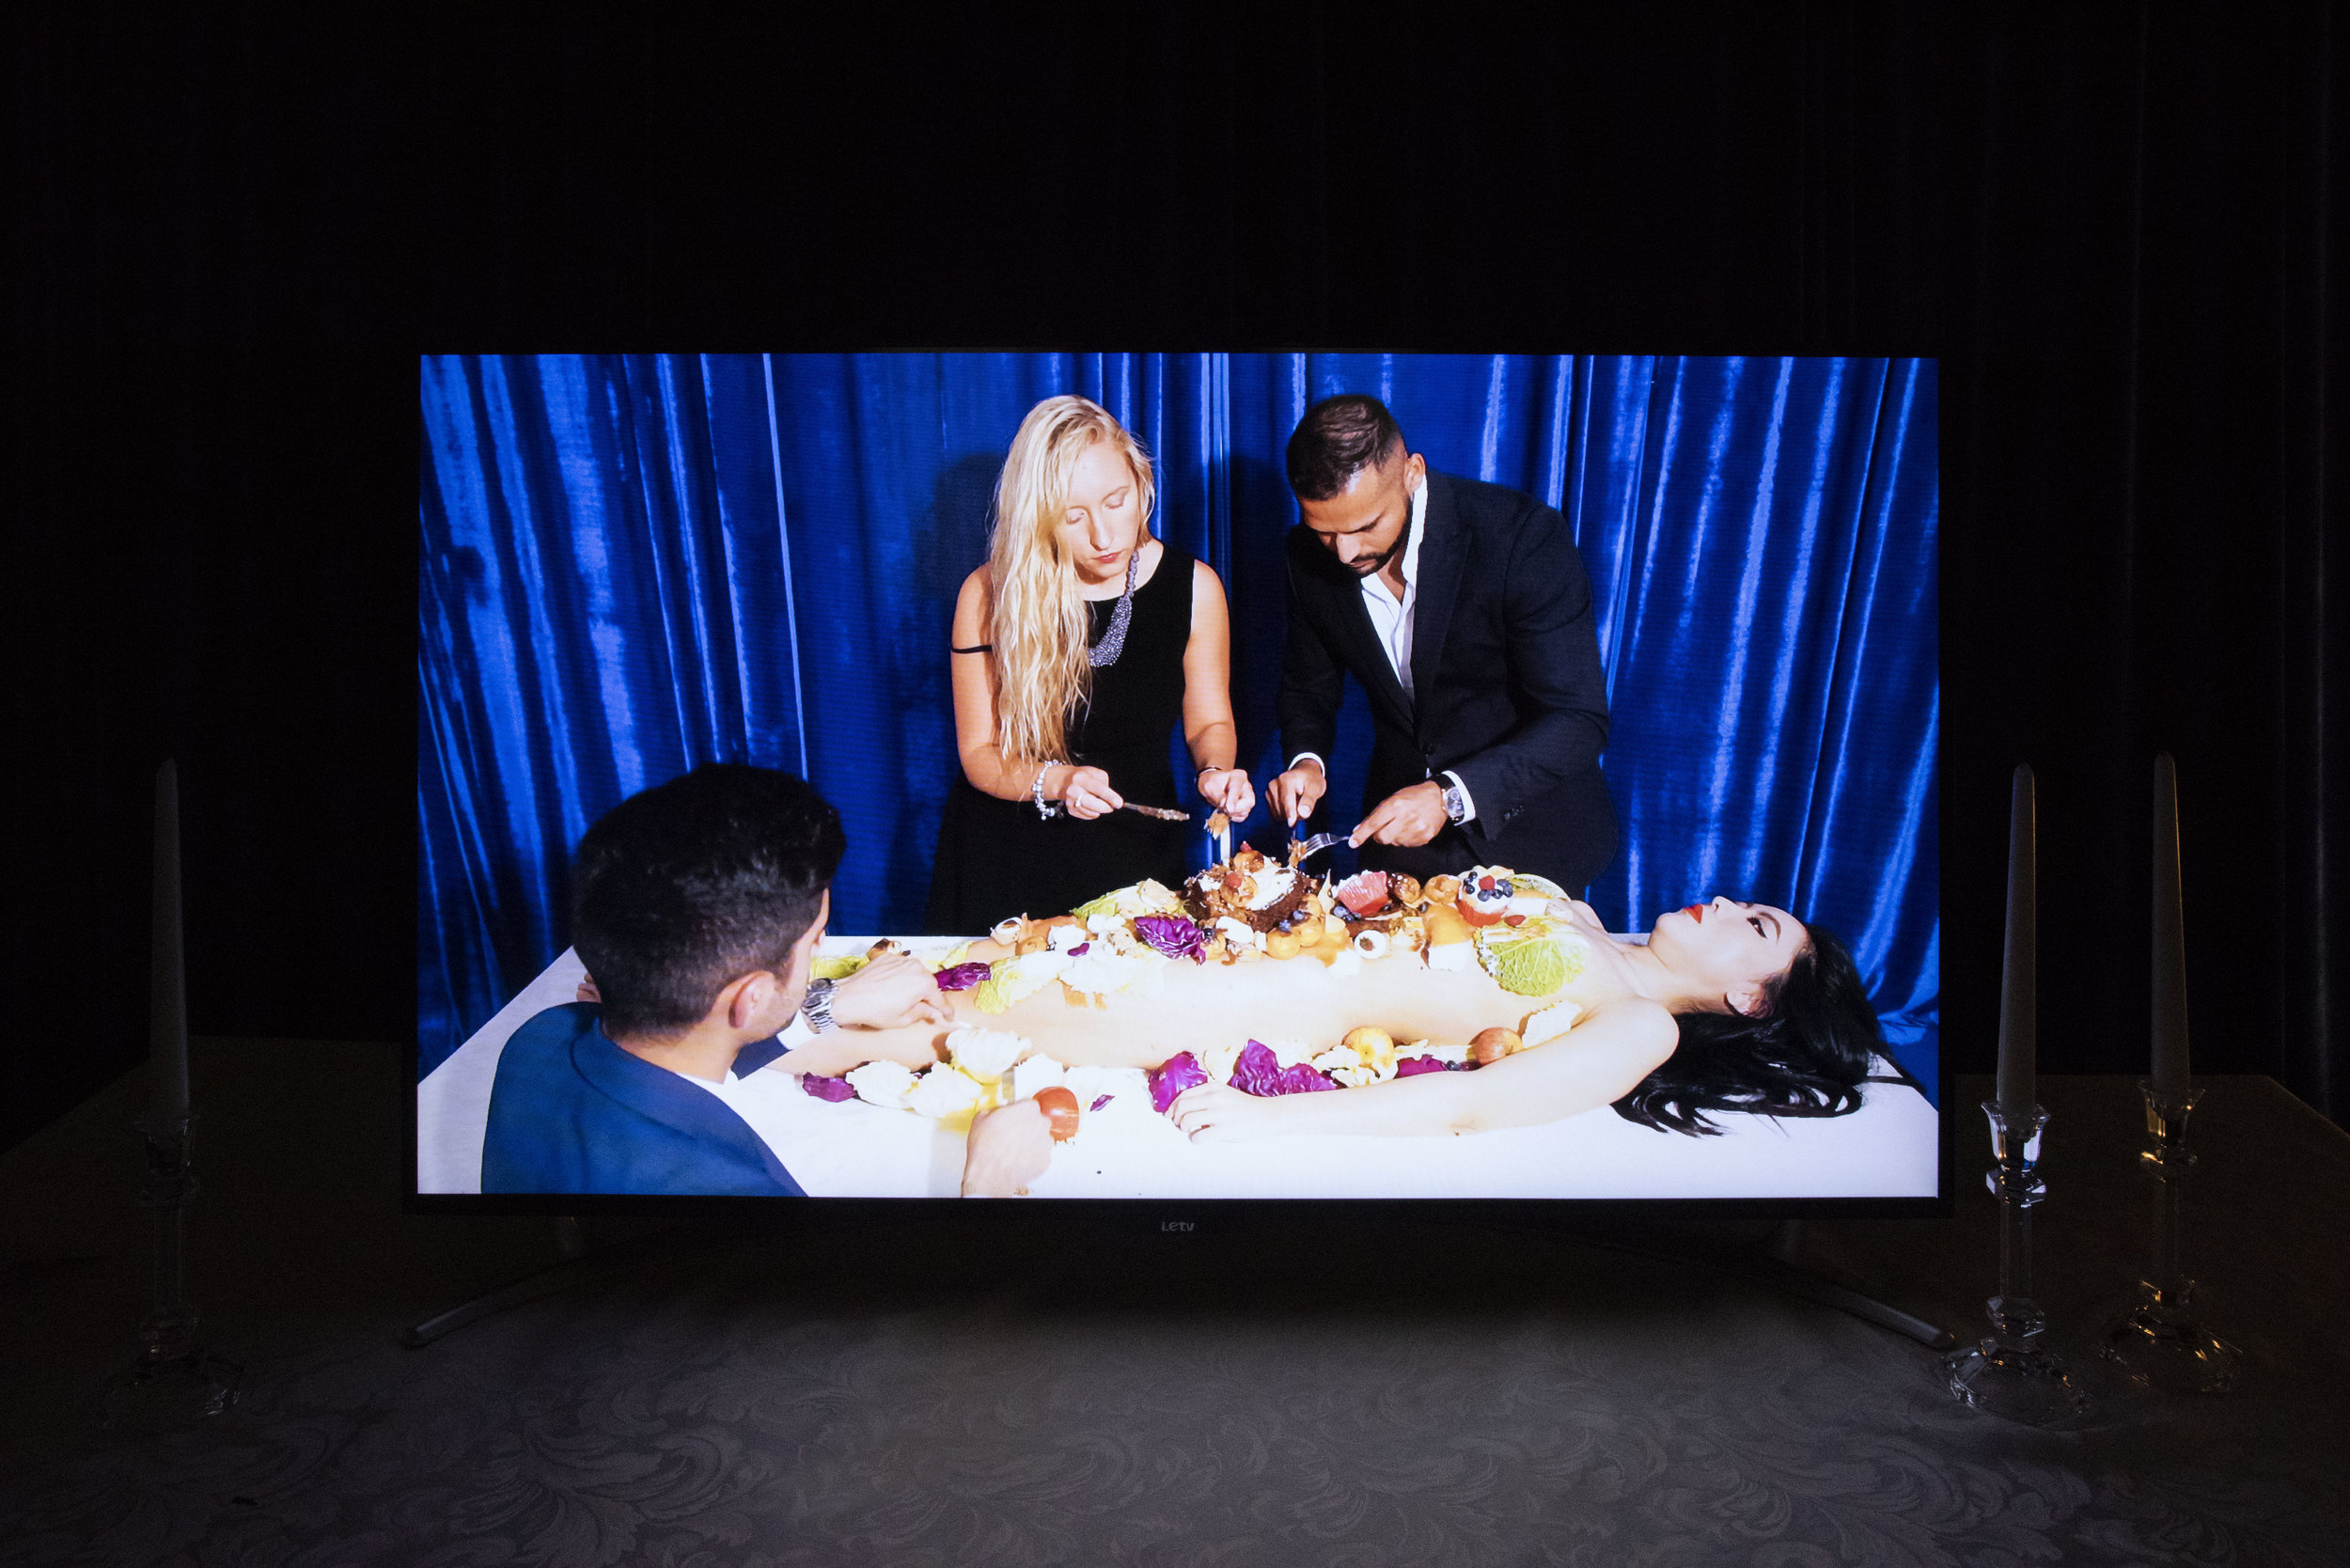 """FOUR CHANNEL VIDEOS, 2018  """"Foodgasm over orgasm is an utopian ideology of refusing to play the role of femininity established by the patriarchy And, to be come the opposite of orgasm. I'm in an on-and-off toxic relationship with food I'm filling the loneliness But I have no nourishment. Culture is our collective experience, where capitalism is masquerading."""""""